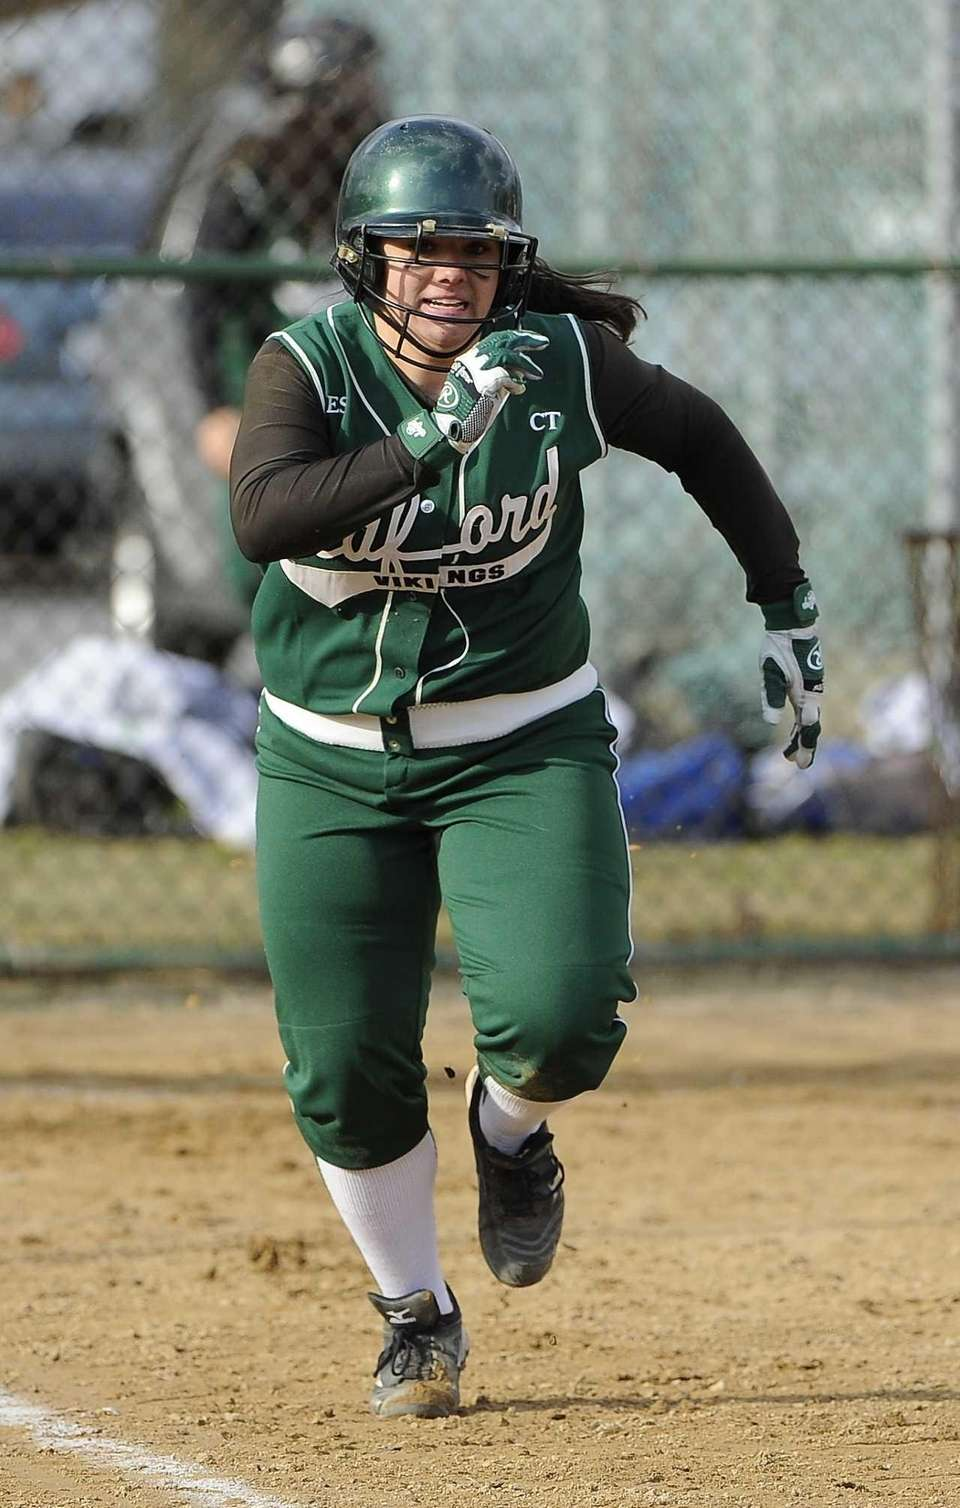 Seaford's Lindsay Montemarano runs the bases after hitting